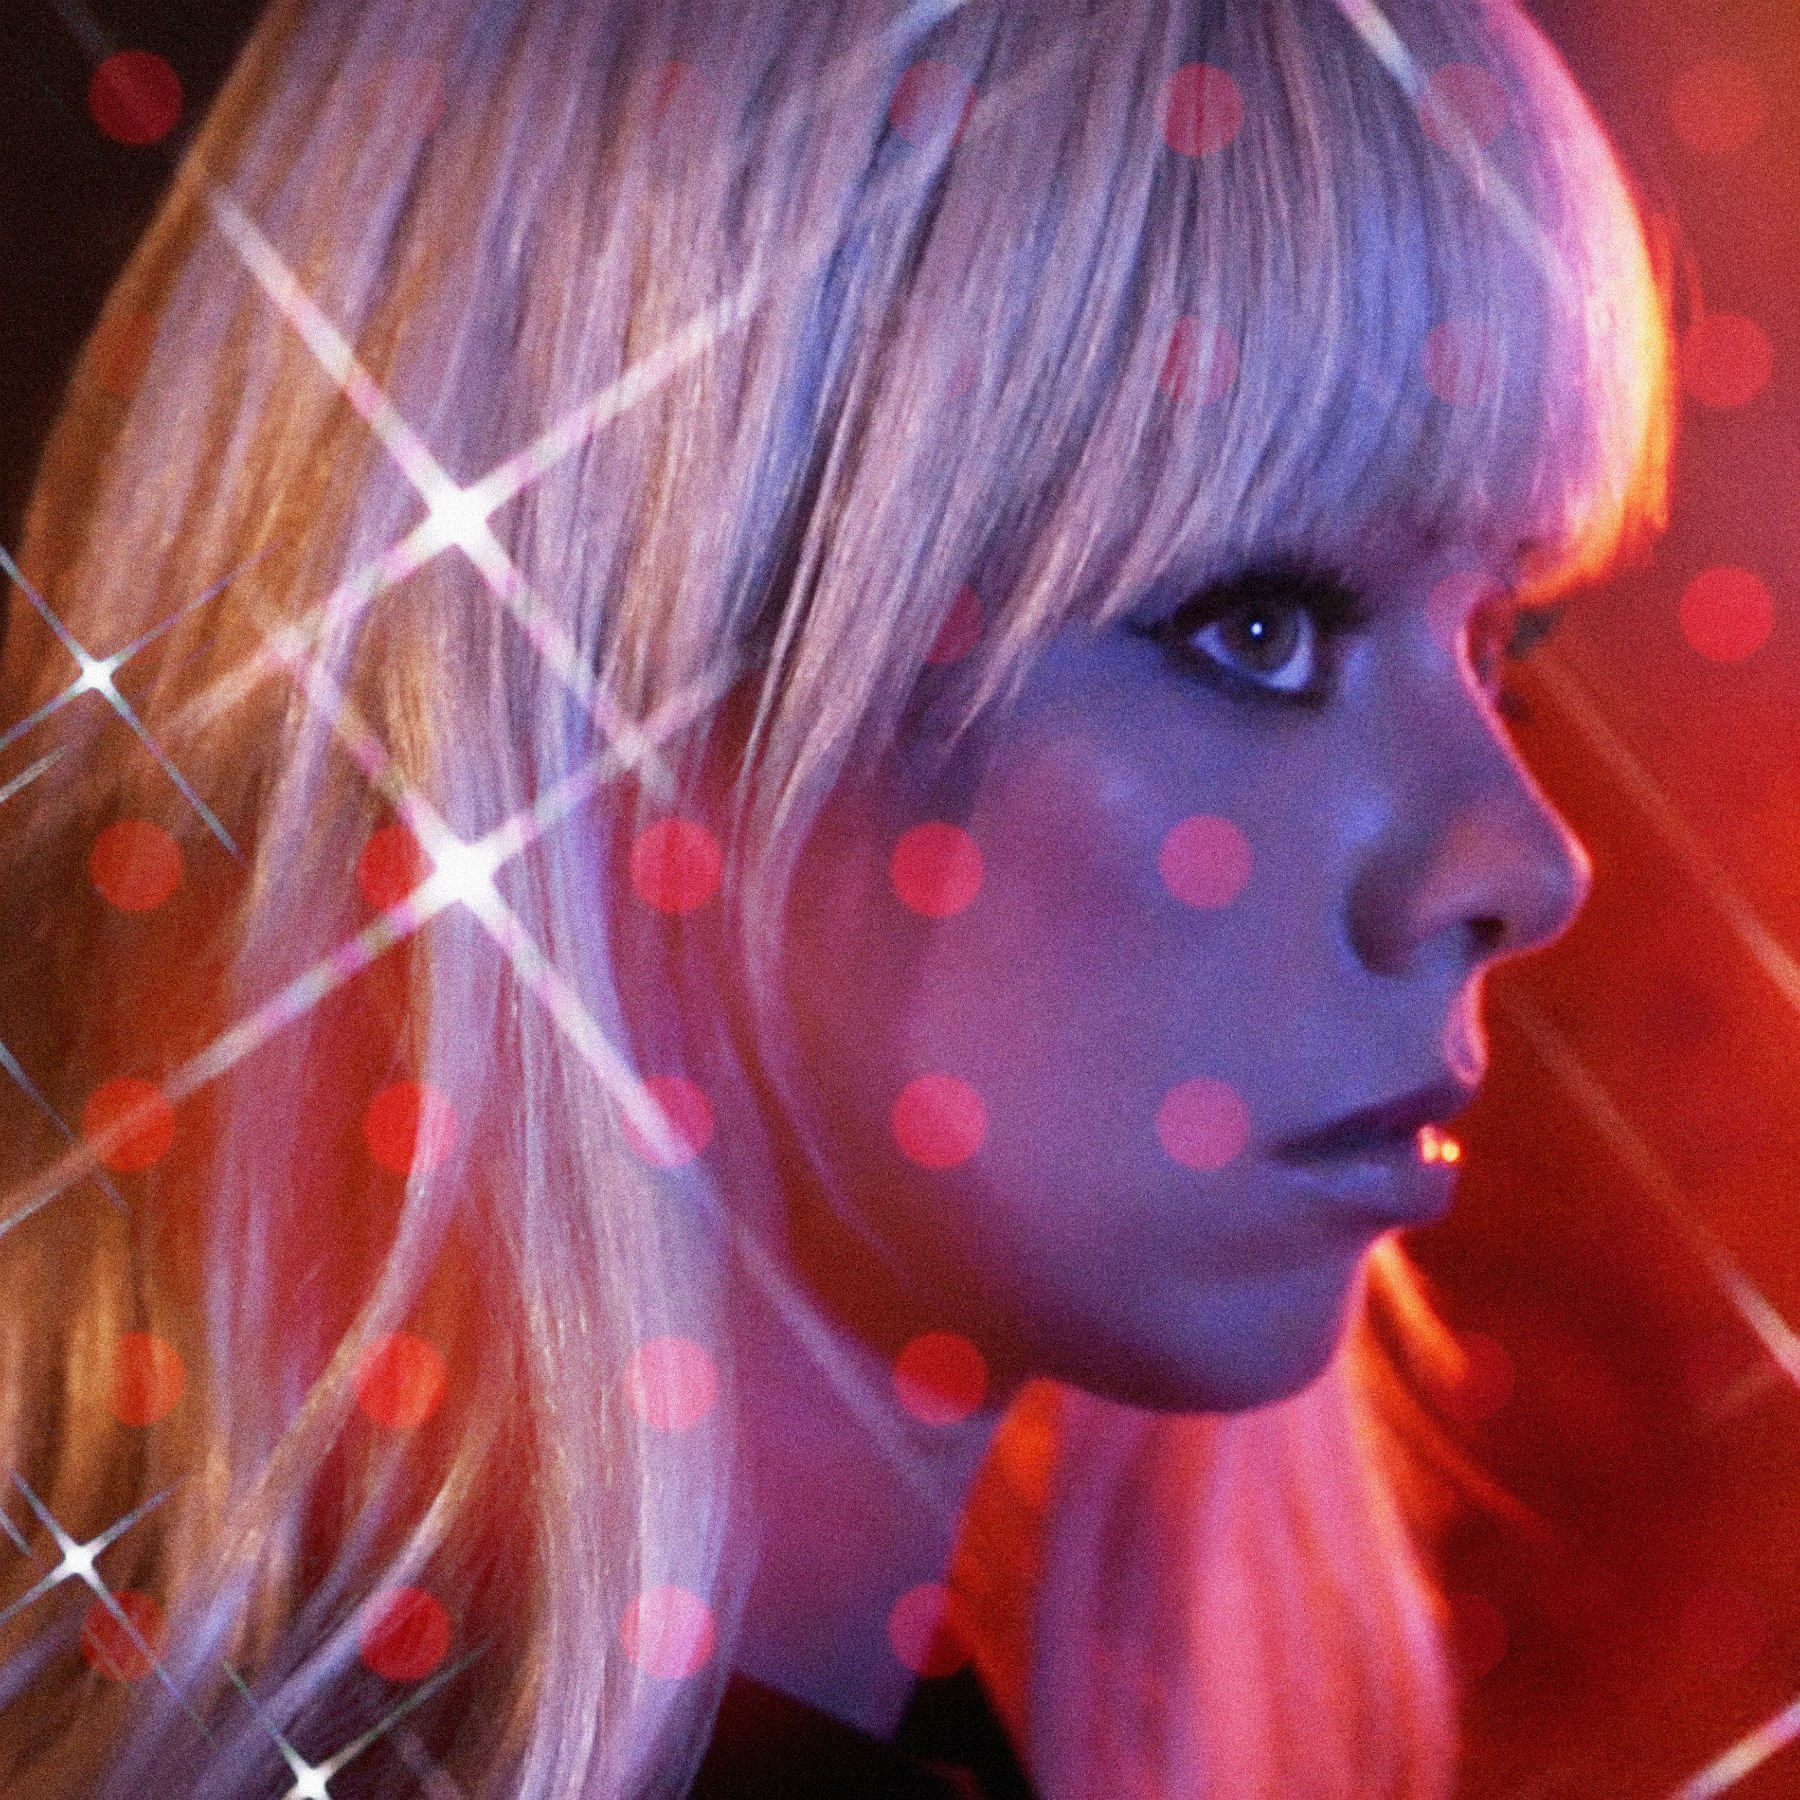 Chromatics share new song and confirm Dear Tommy release. https://t.co/tykjhsSnq1 https://t.co/I1rJ8yddVA